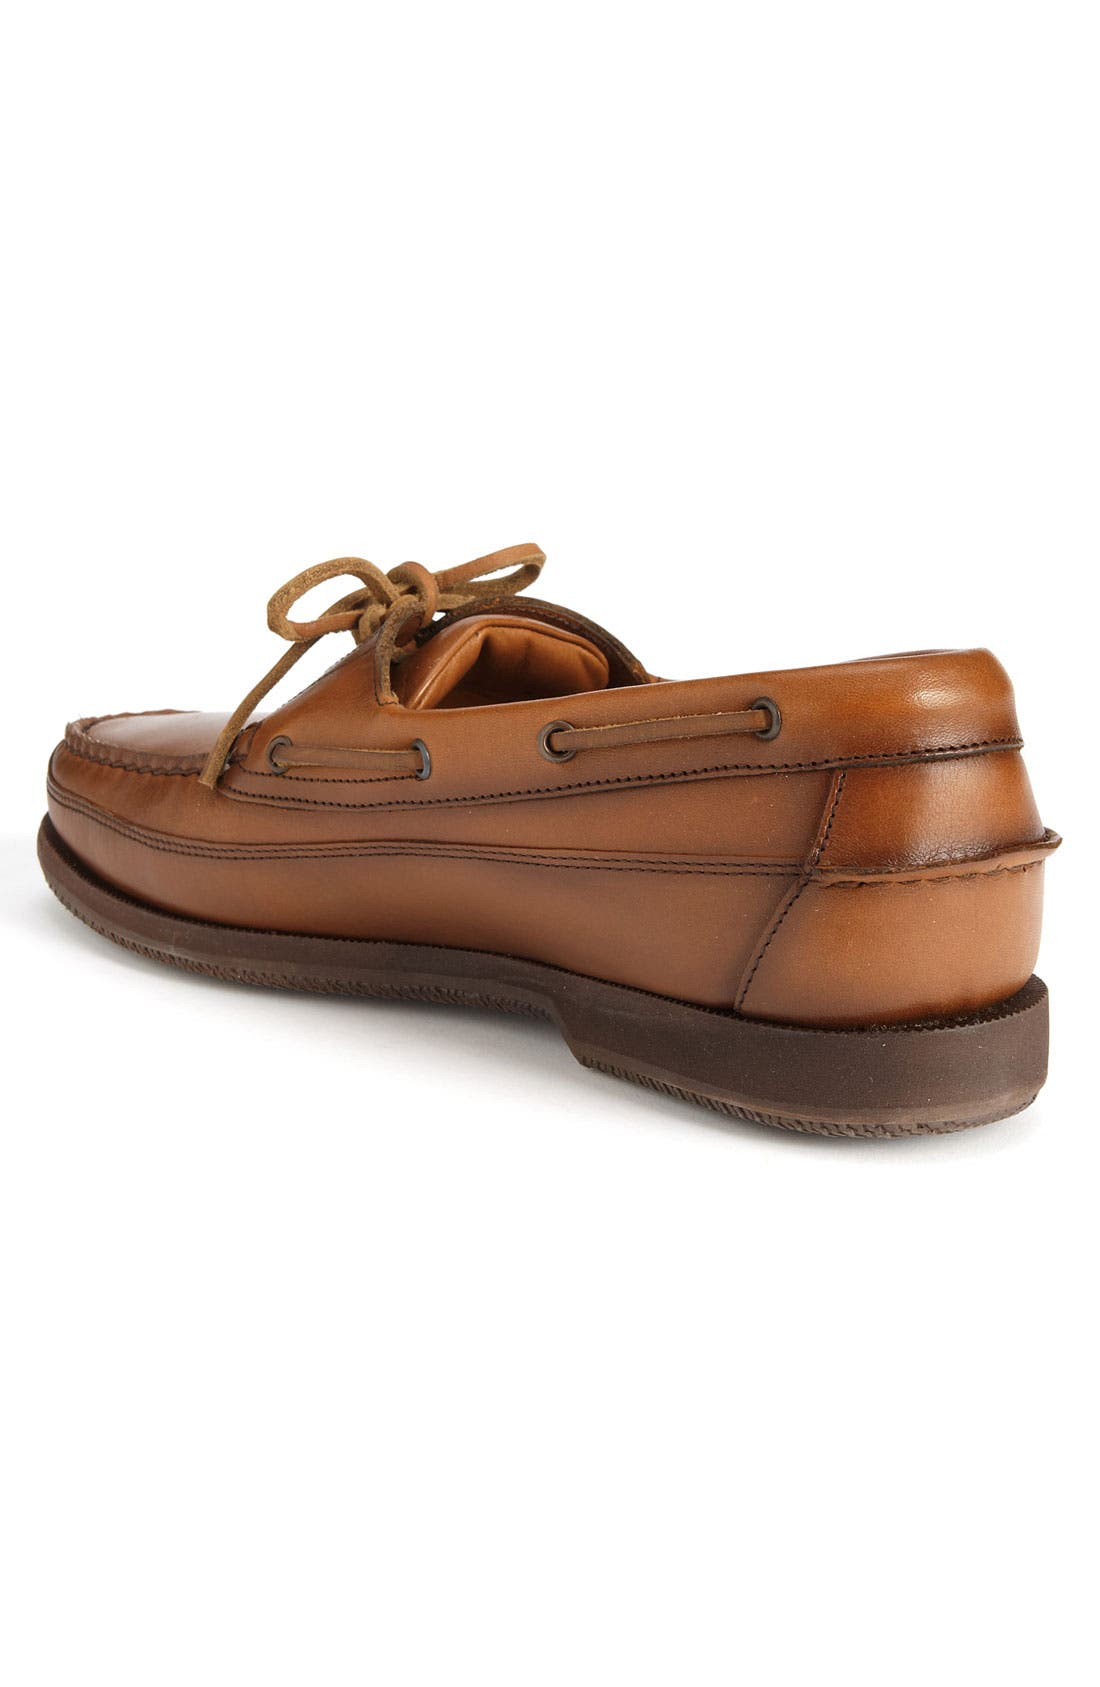 Alternate Image 2  - Mephisto 'Hurrikan' Boat Shoe